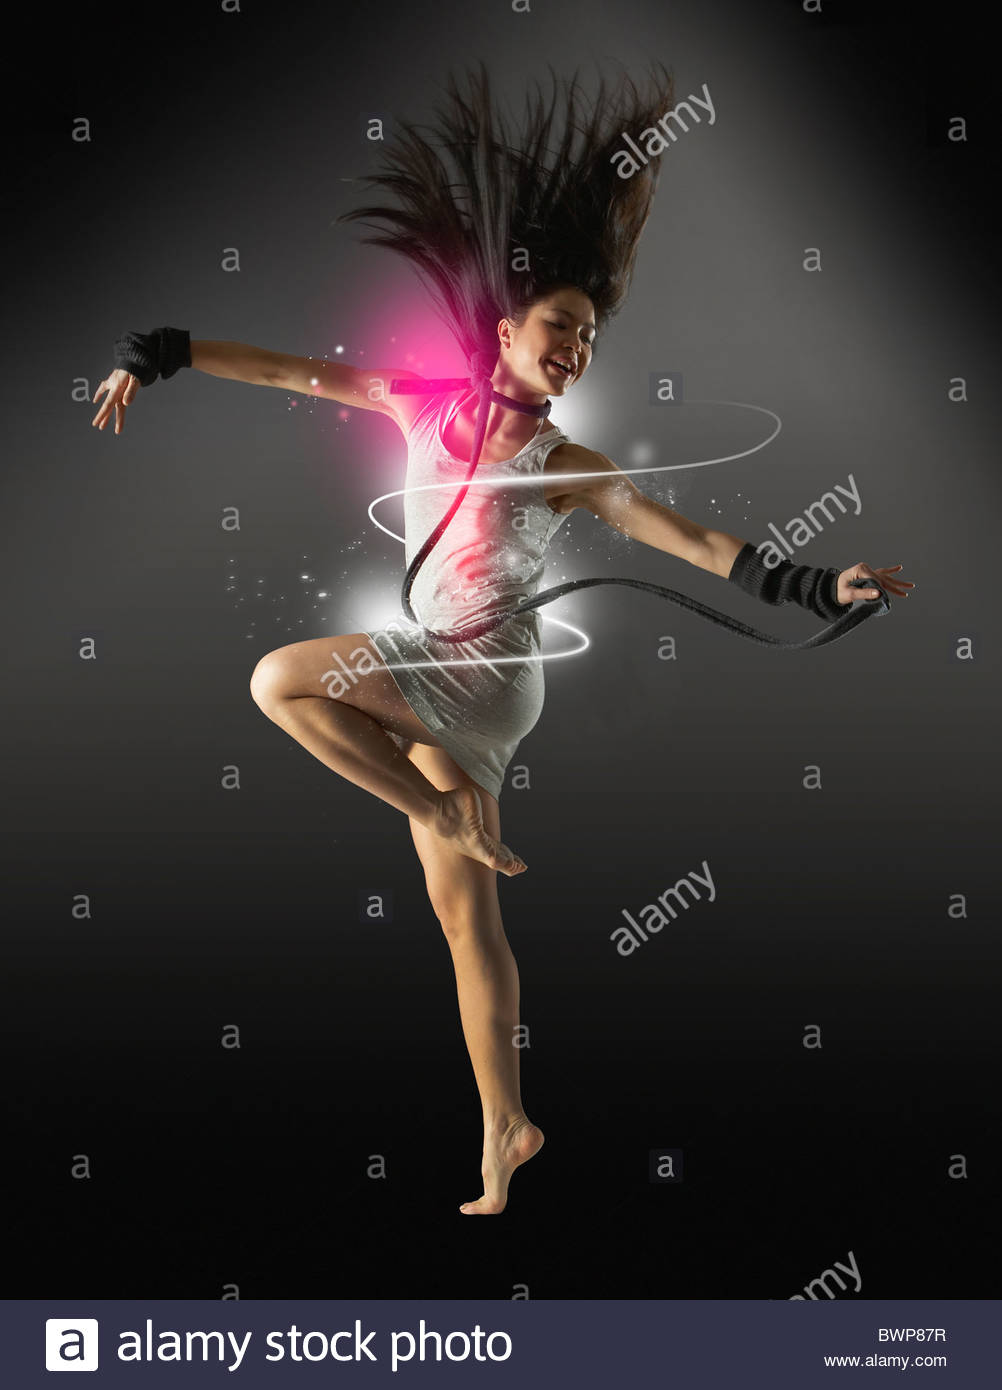 Glamorous woman dancing Photo Stock